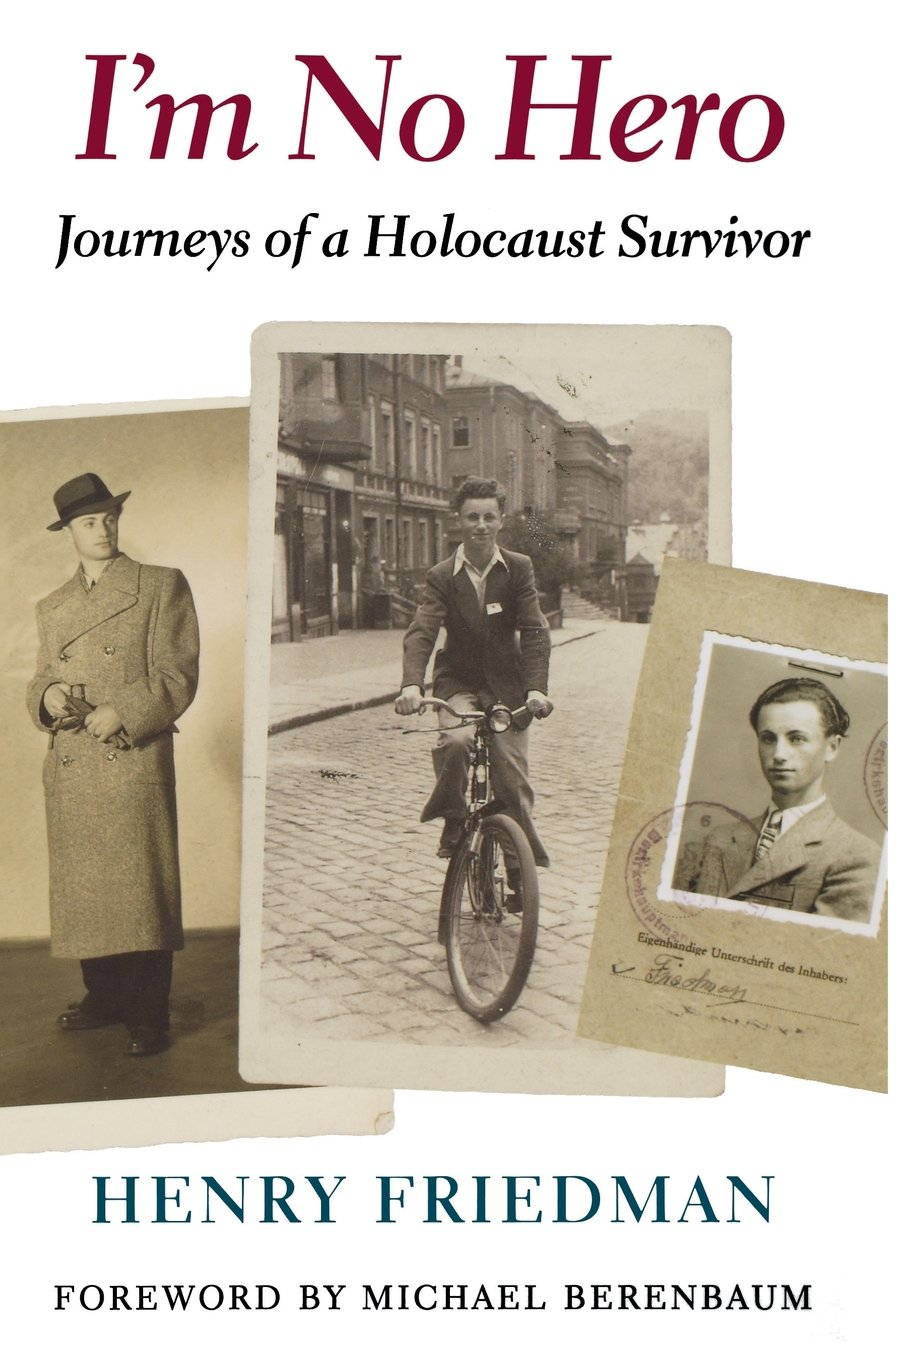 I'm No Hero: Journeys of a Holocaust Survivor